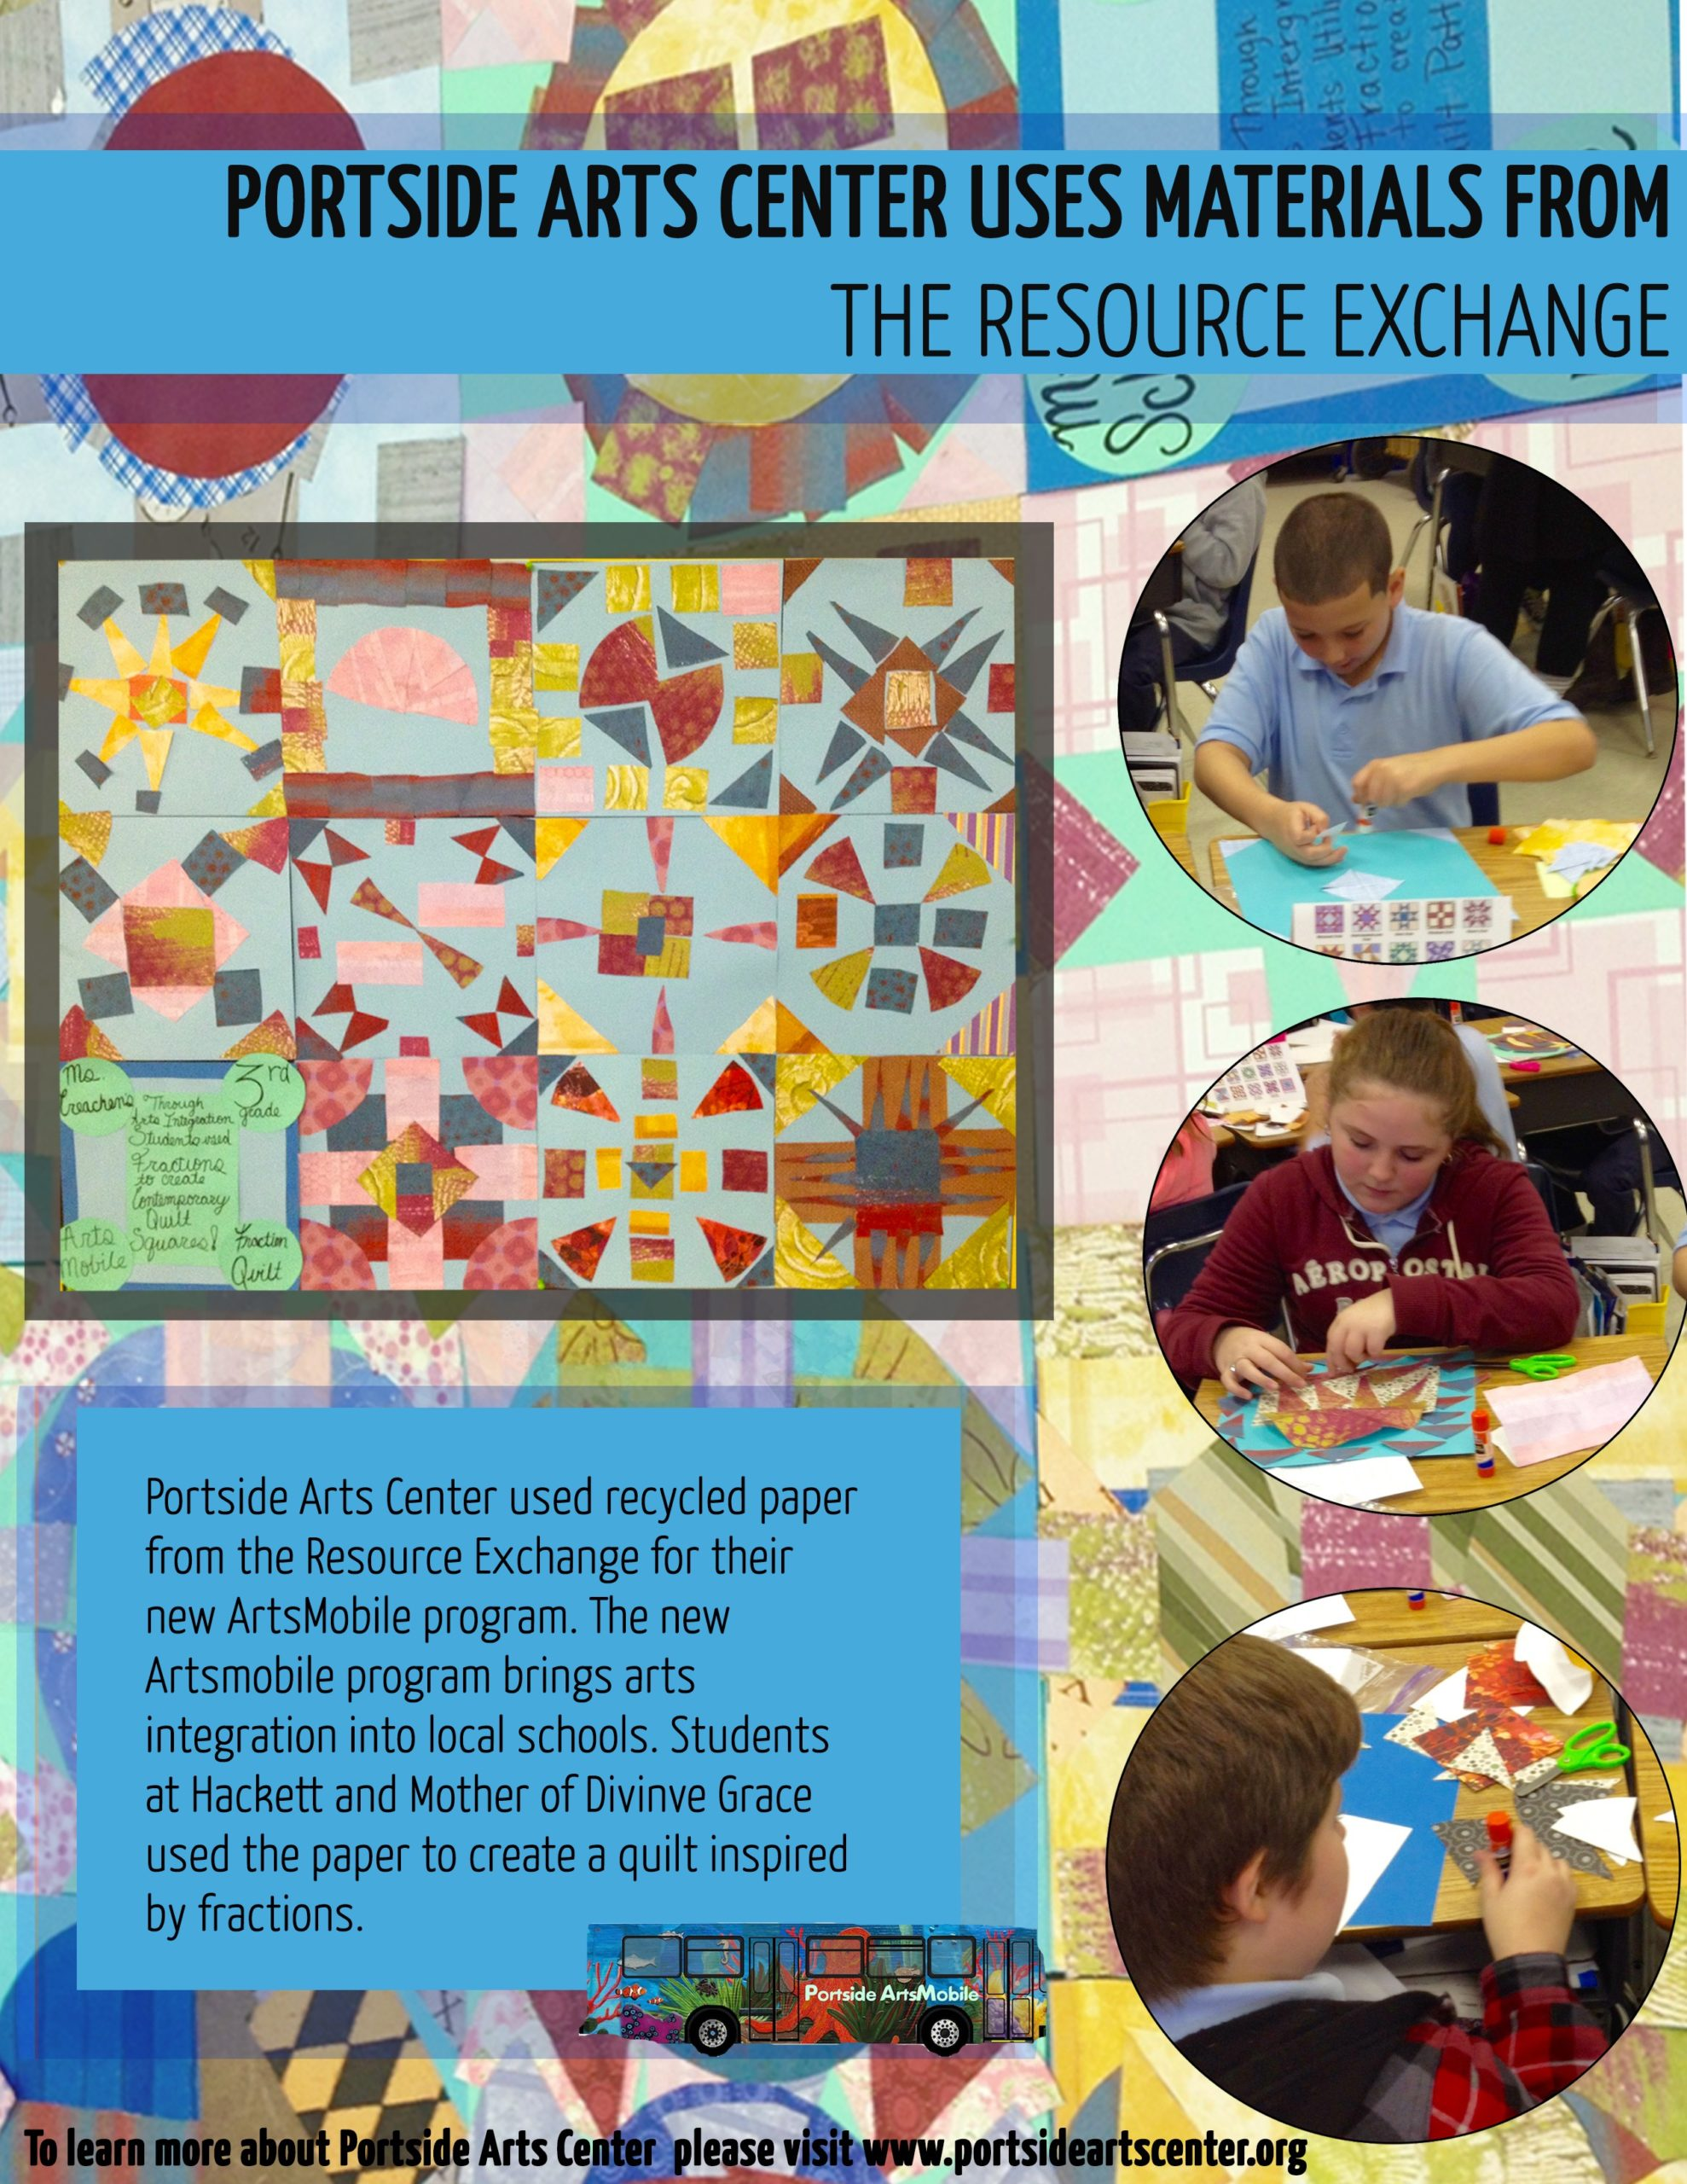 Portside Arts Center + The Resource Exchange